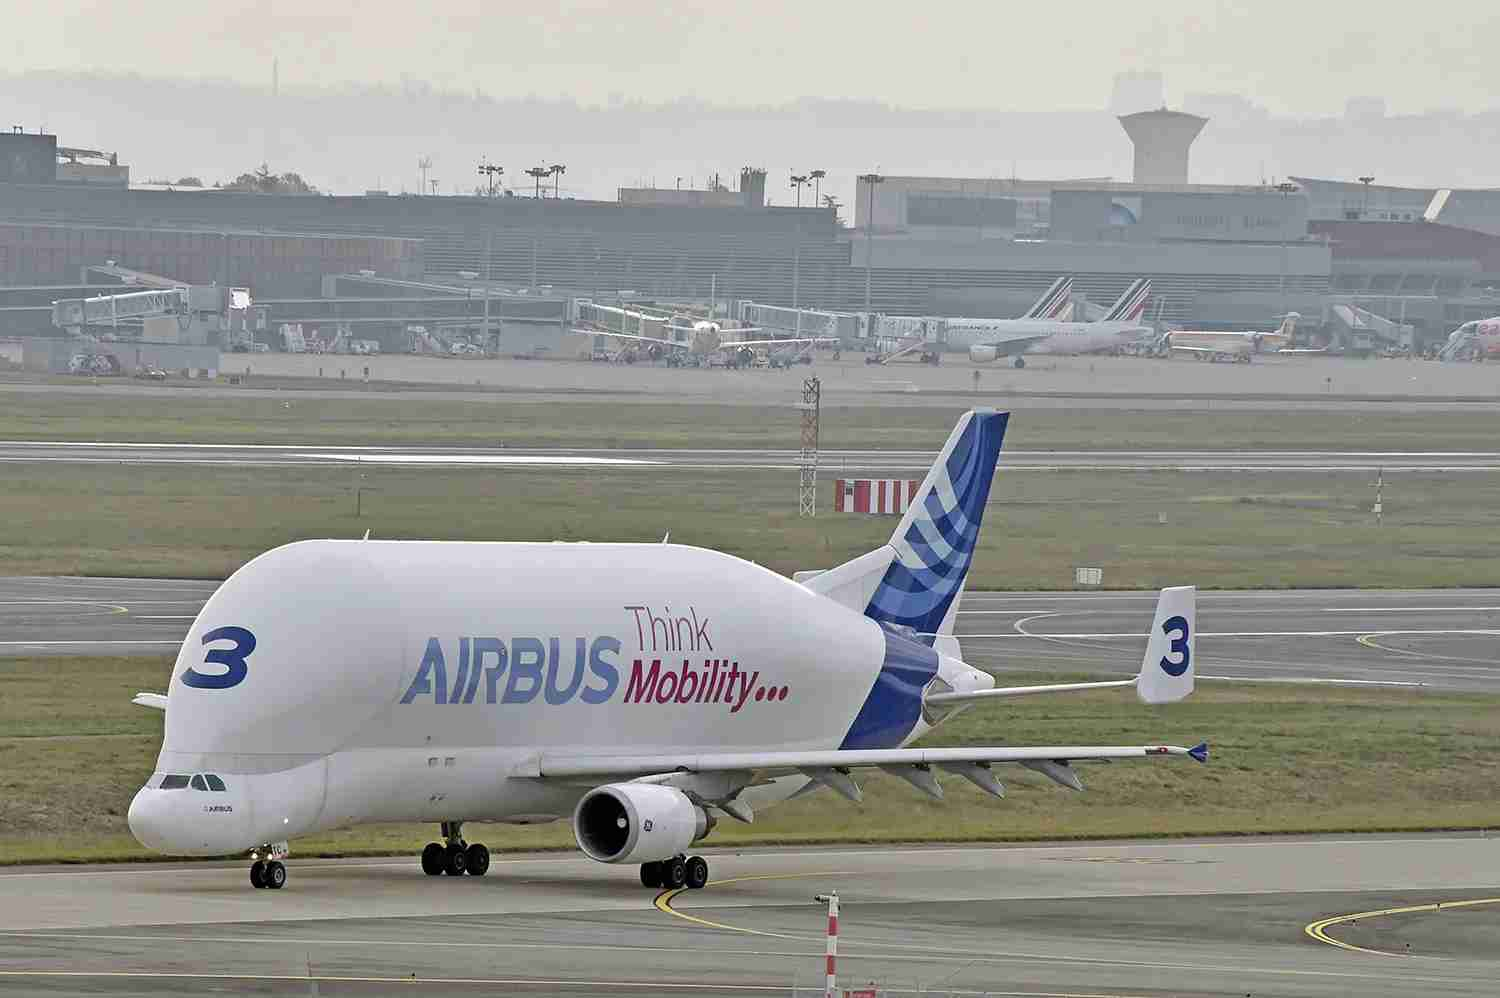 The original Beluga at Toulouse-Blagnac airport in September, 2014. (Photo by Pascal Pavani/AFP/Getty Images)